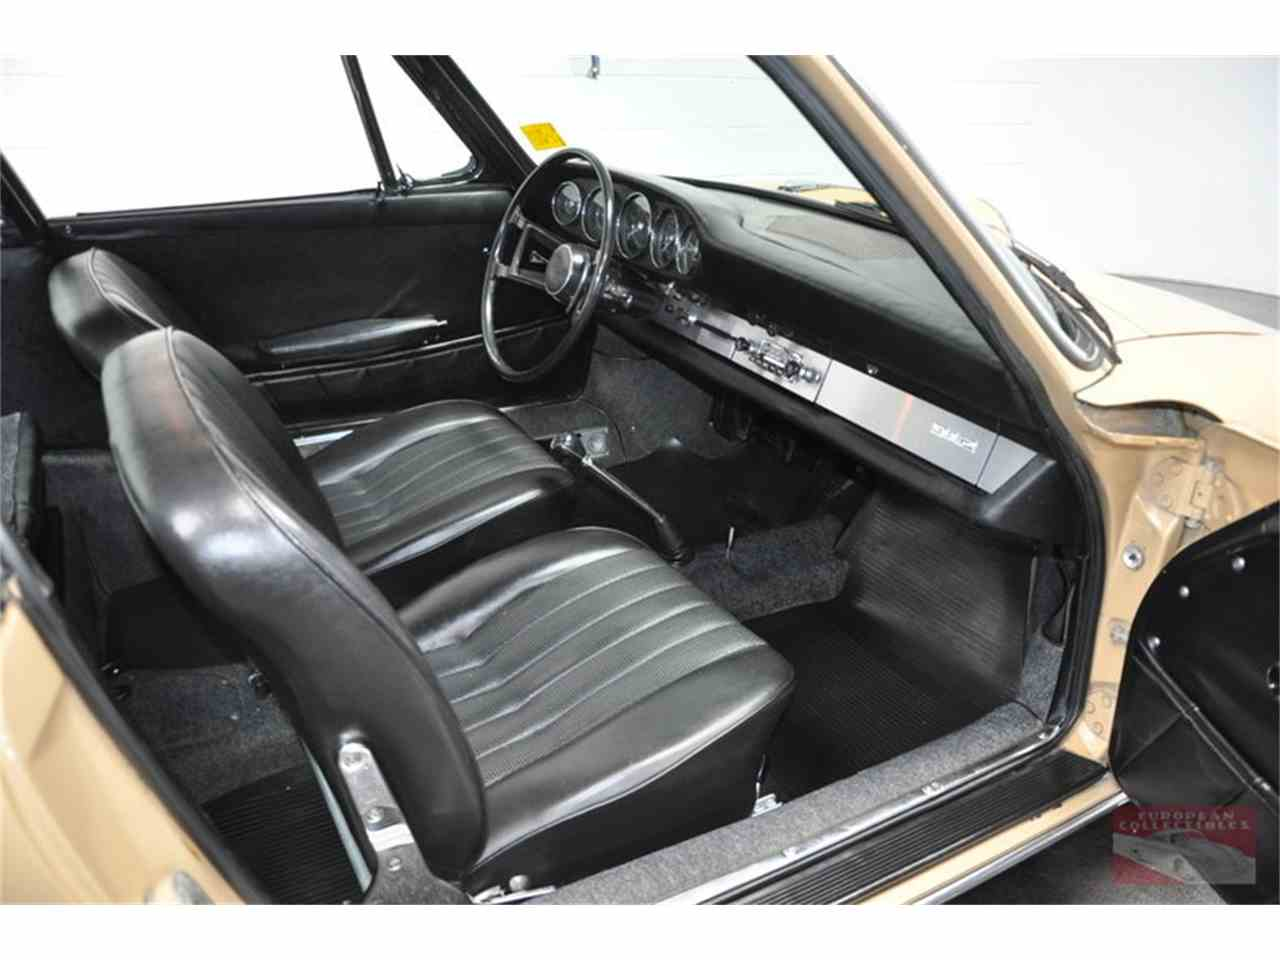 Large Picture of 1967 Porsche 912 located in Costa Mesa California - $59,500.00 - LHTQ